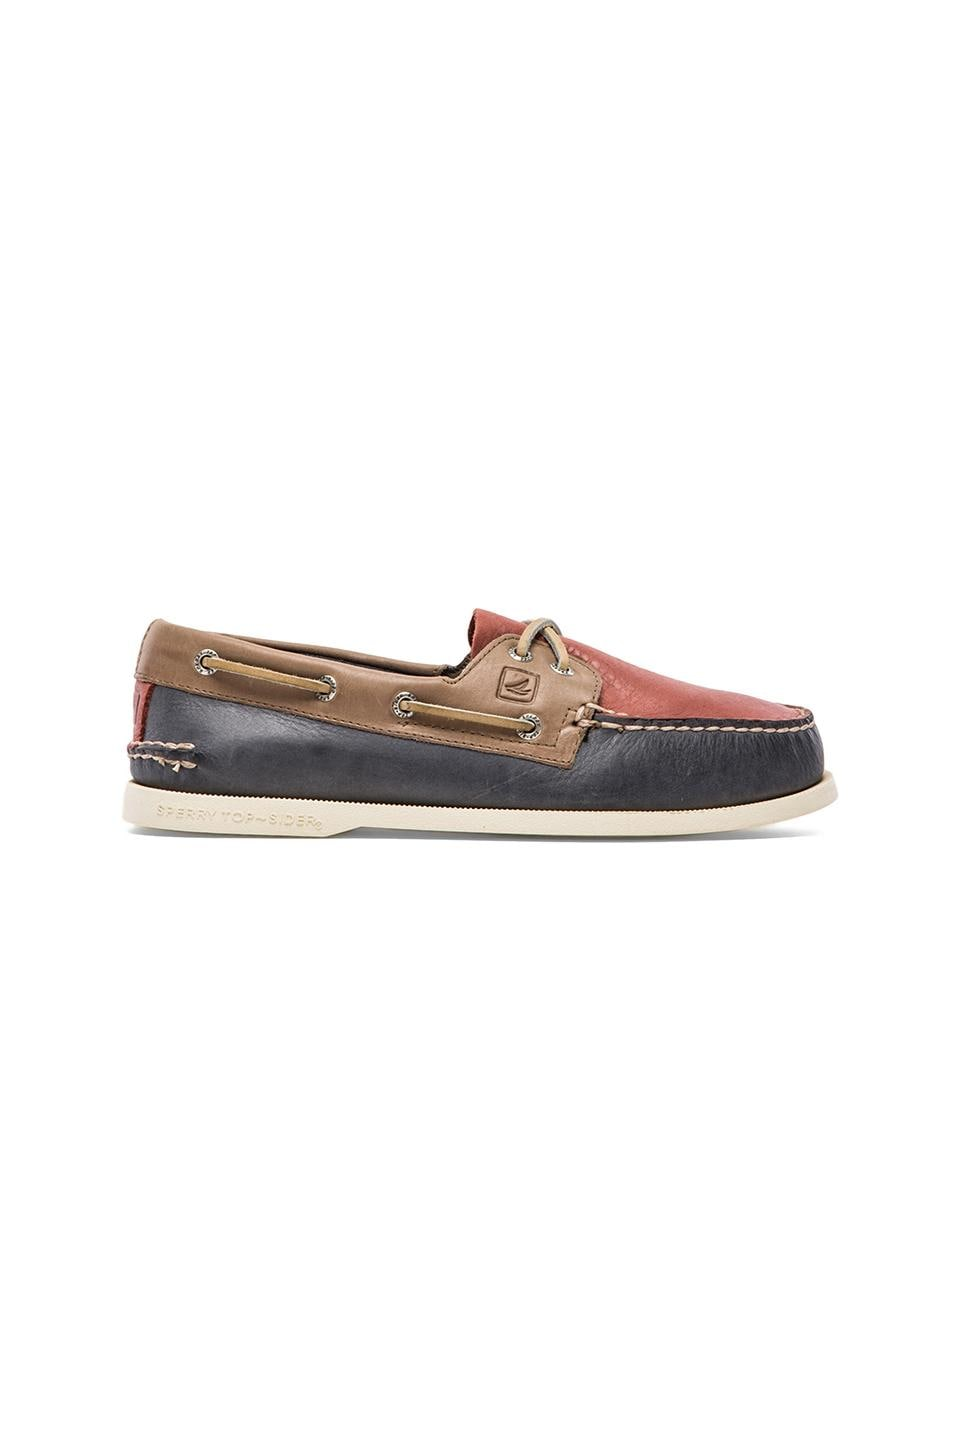 Sperry Top-Sider A/O 2-Eye Burnished in Blue & Red &Beige